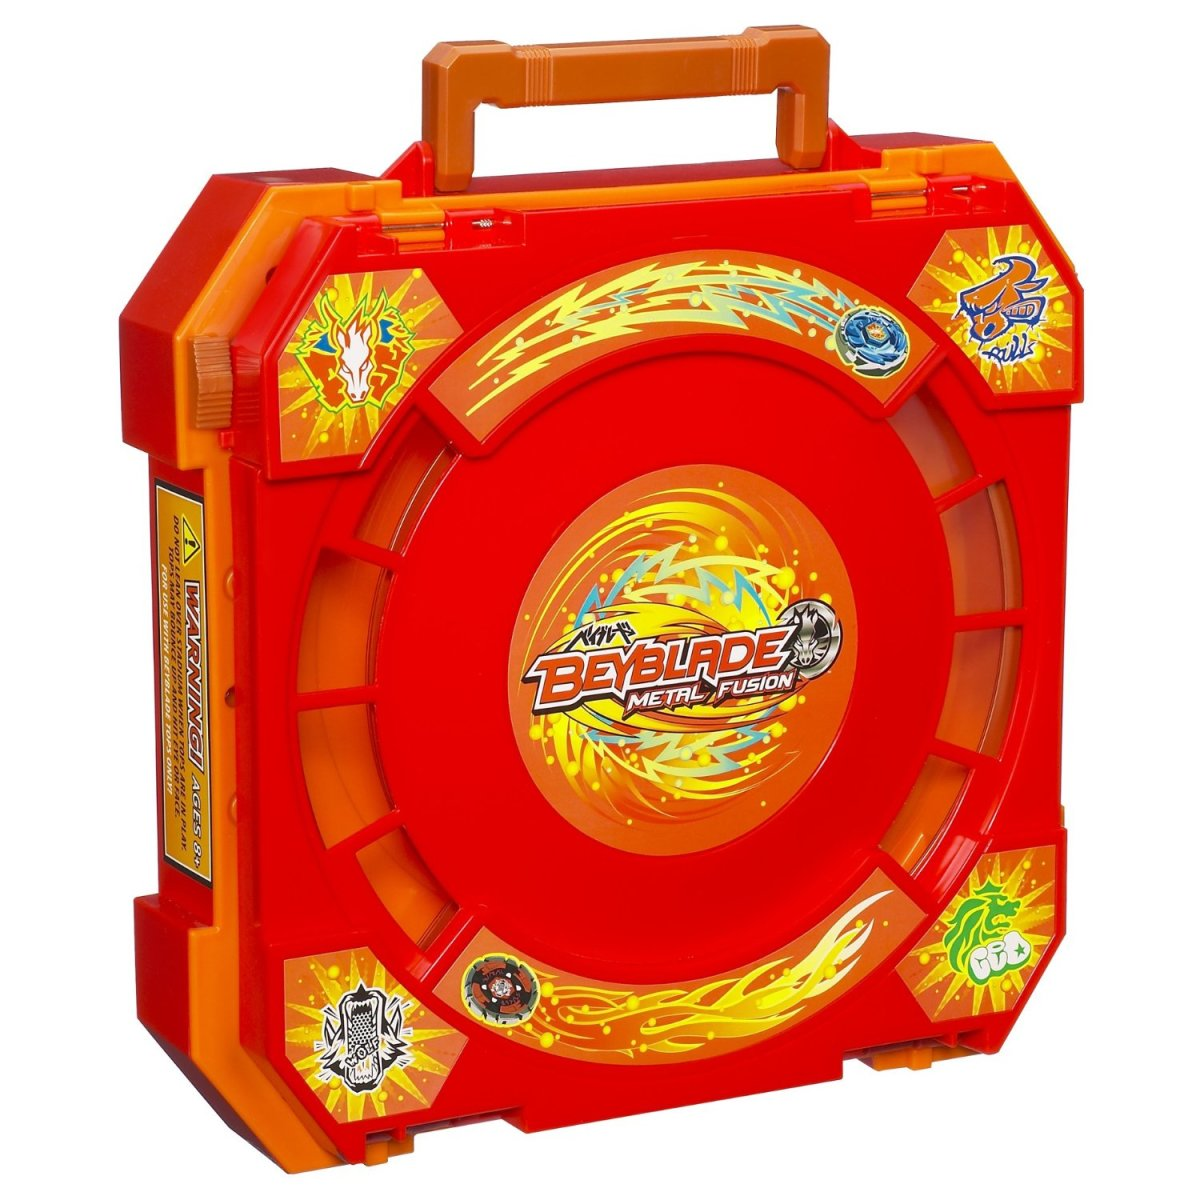 Beyblades for Sale - A Guide to Beyblades